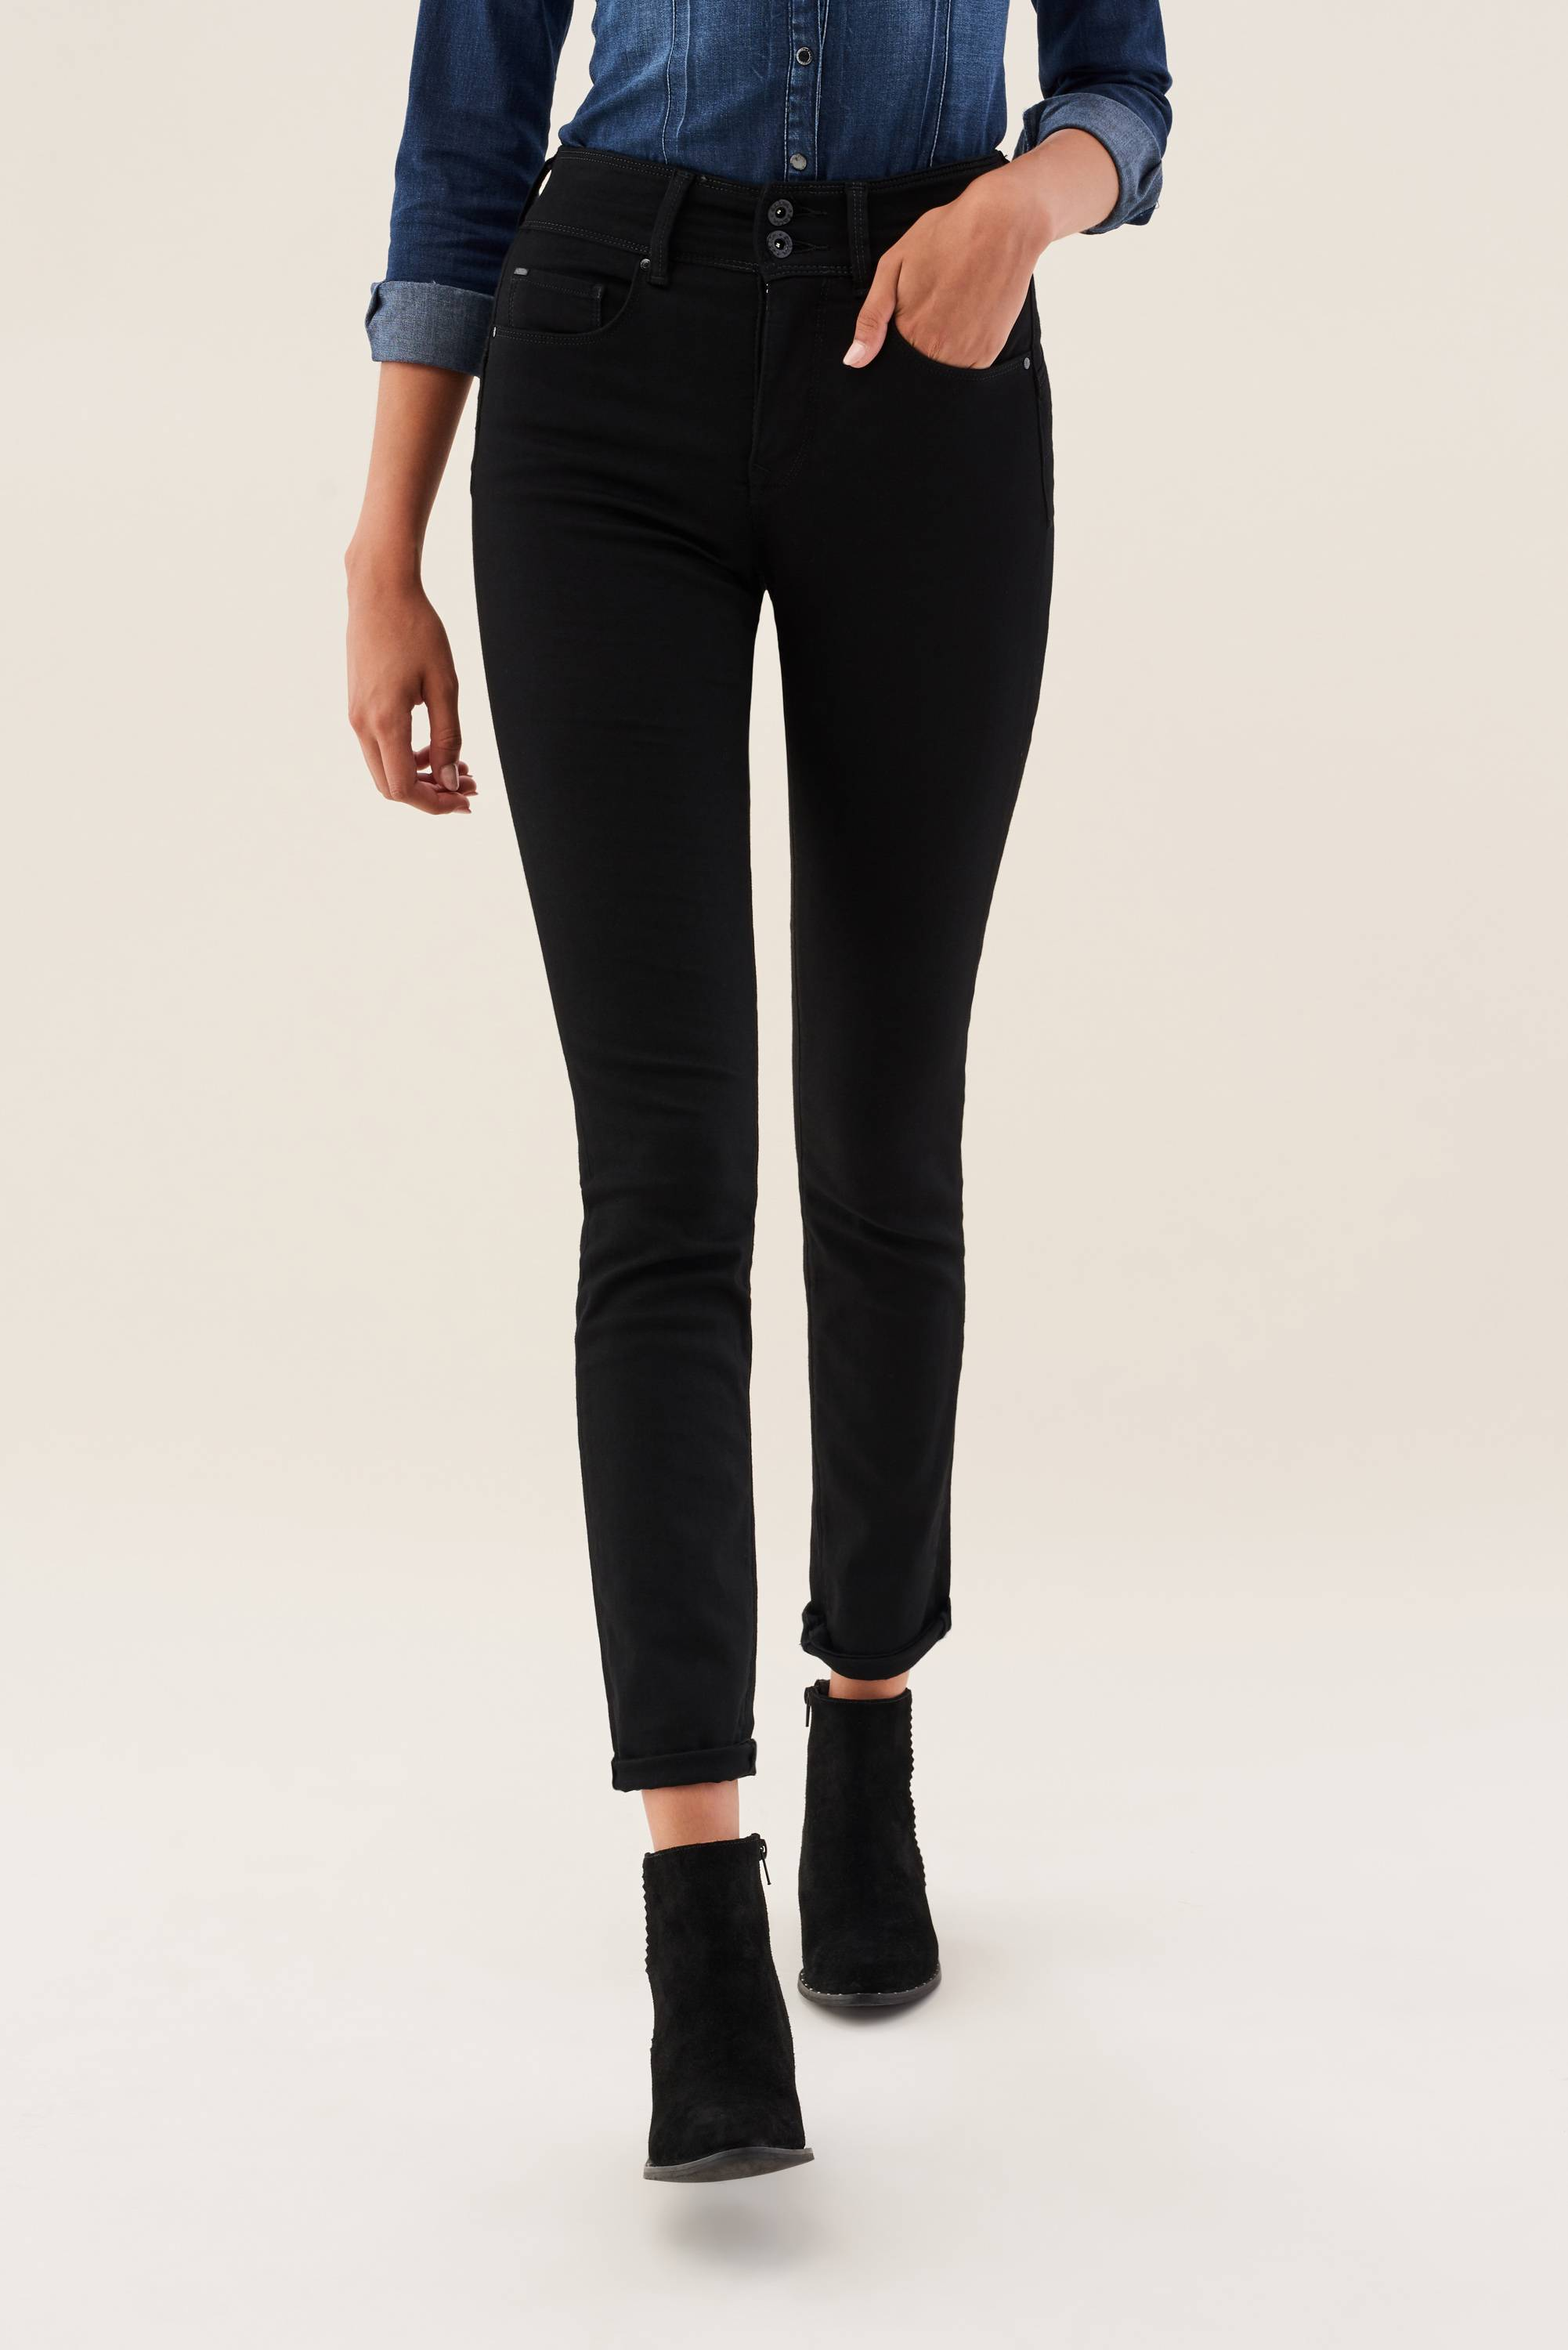 Salsa - Push In Slim Leg - Black